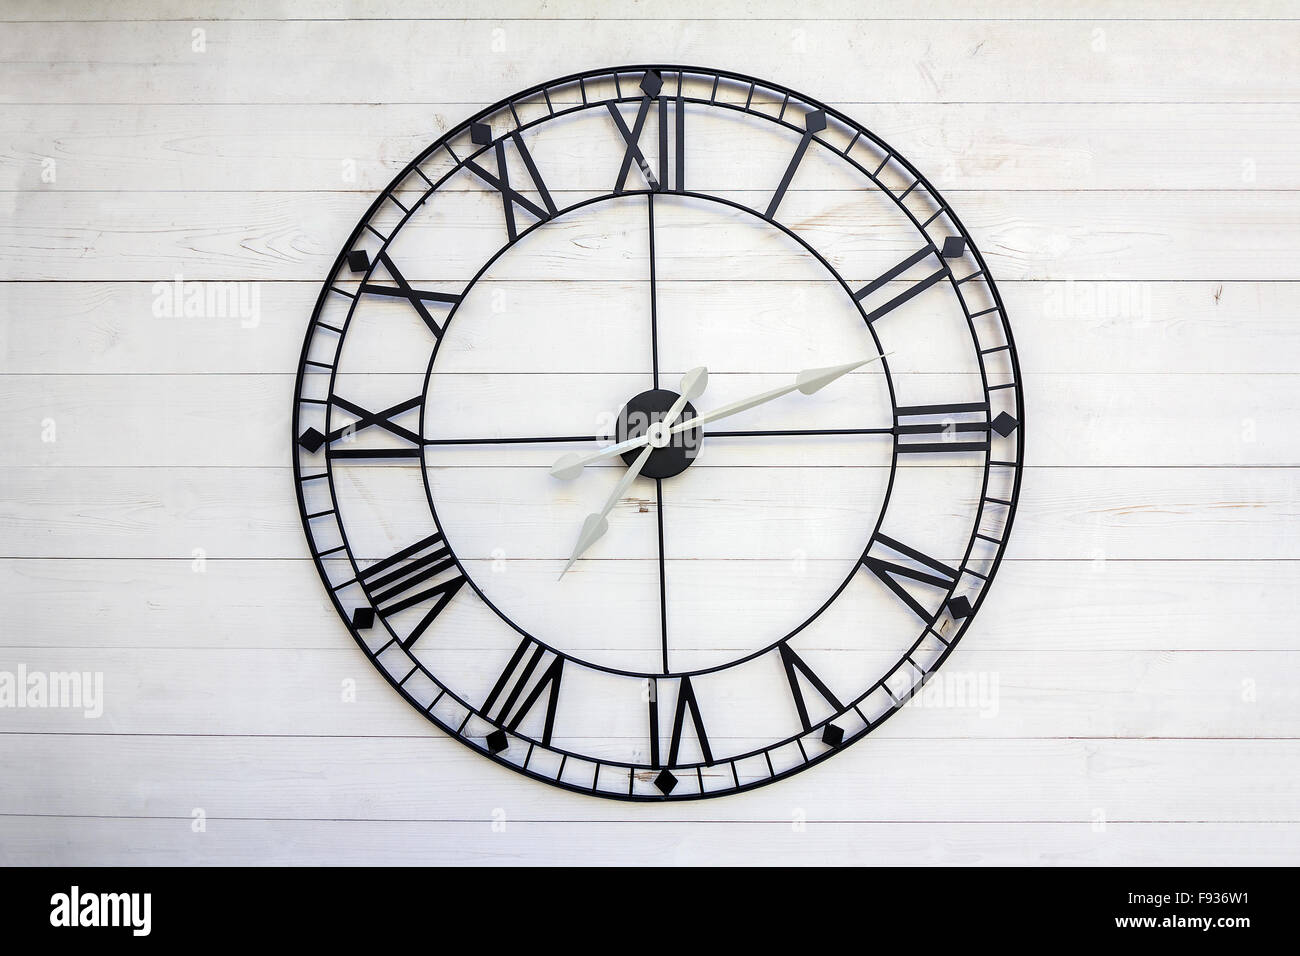 Old roman numeral clock on a wooden background - Stock Image